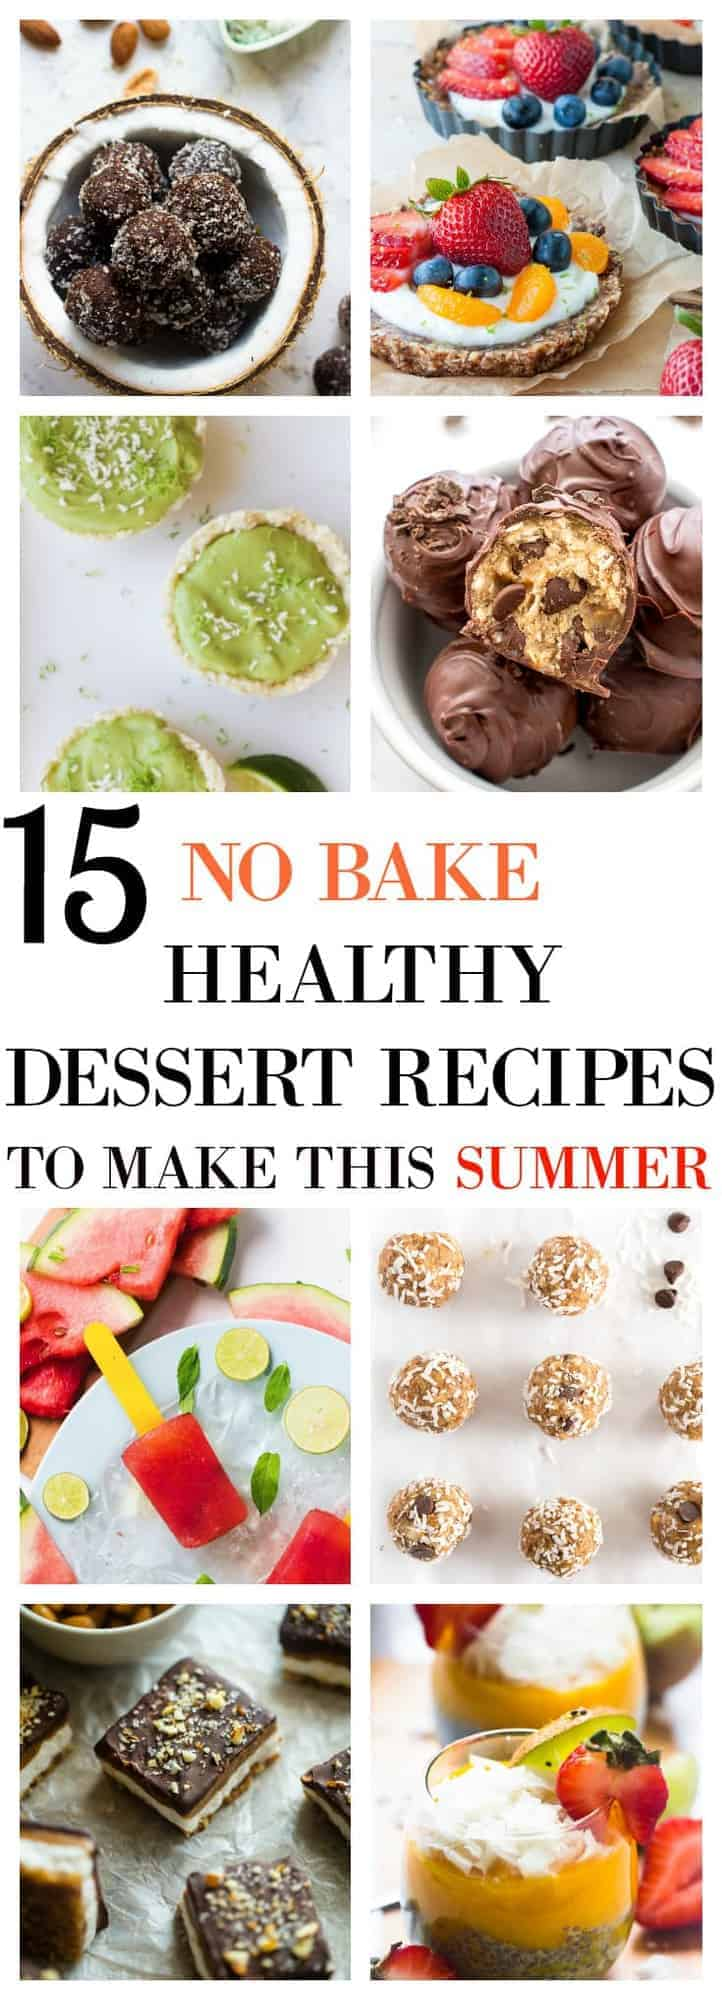 15 Healthy No Bake Dessert Recipes Jessica In The Kitchen